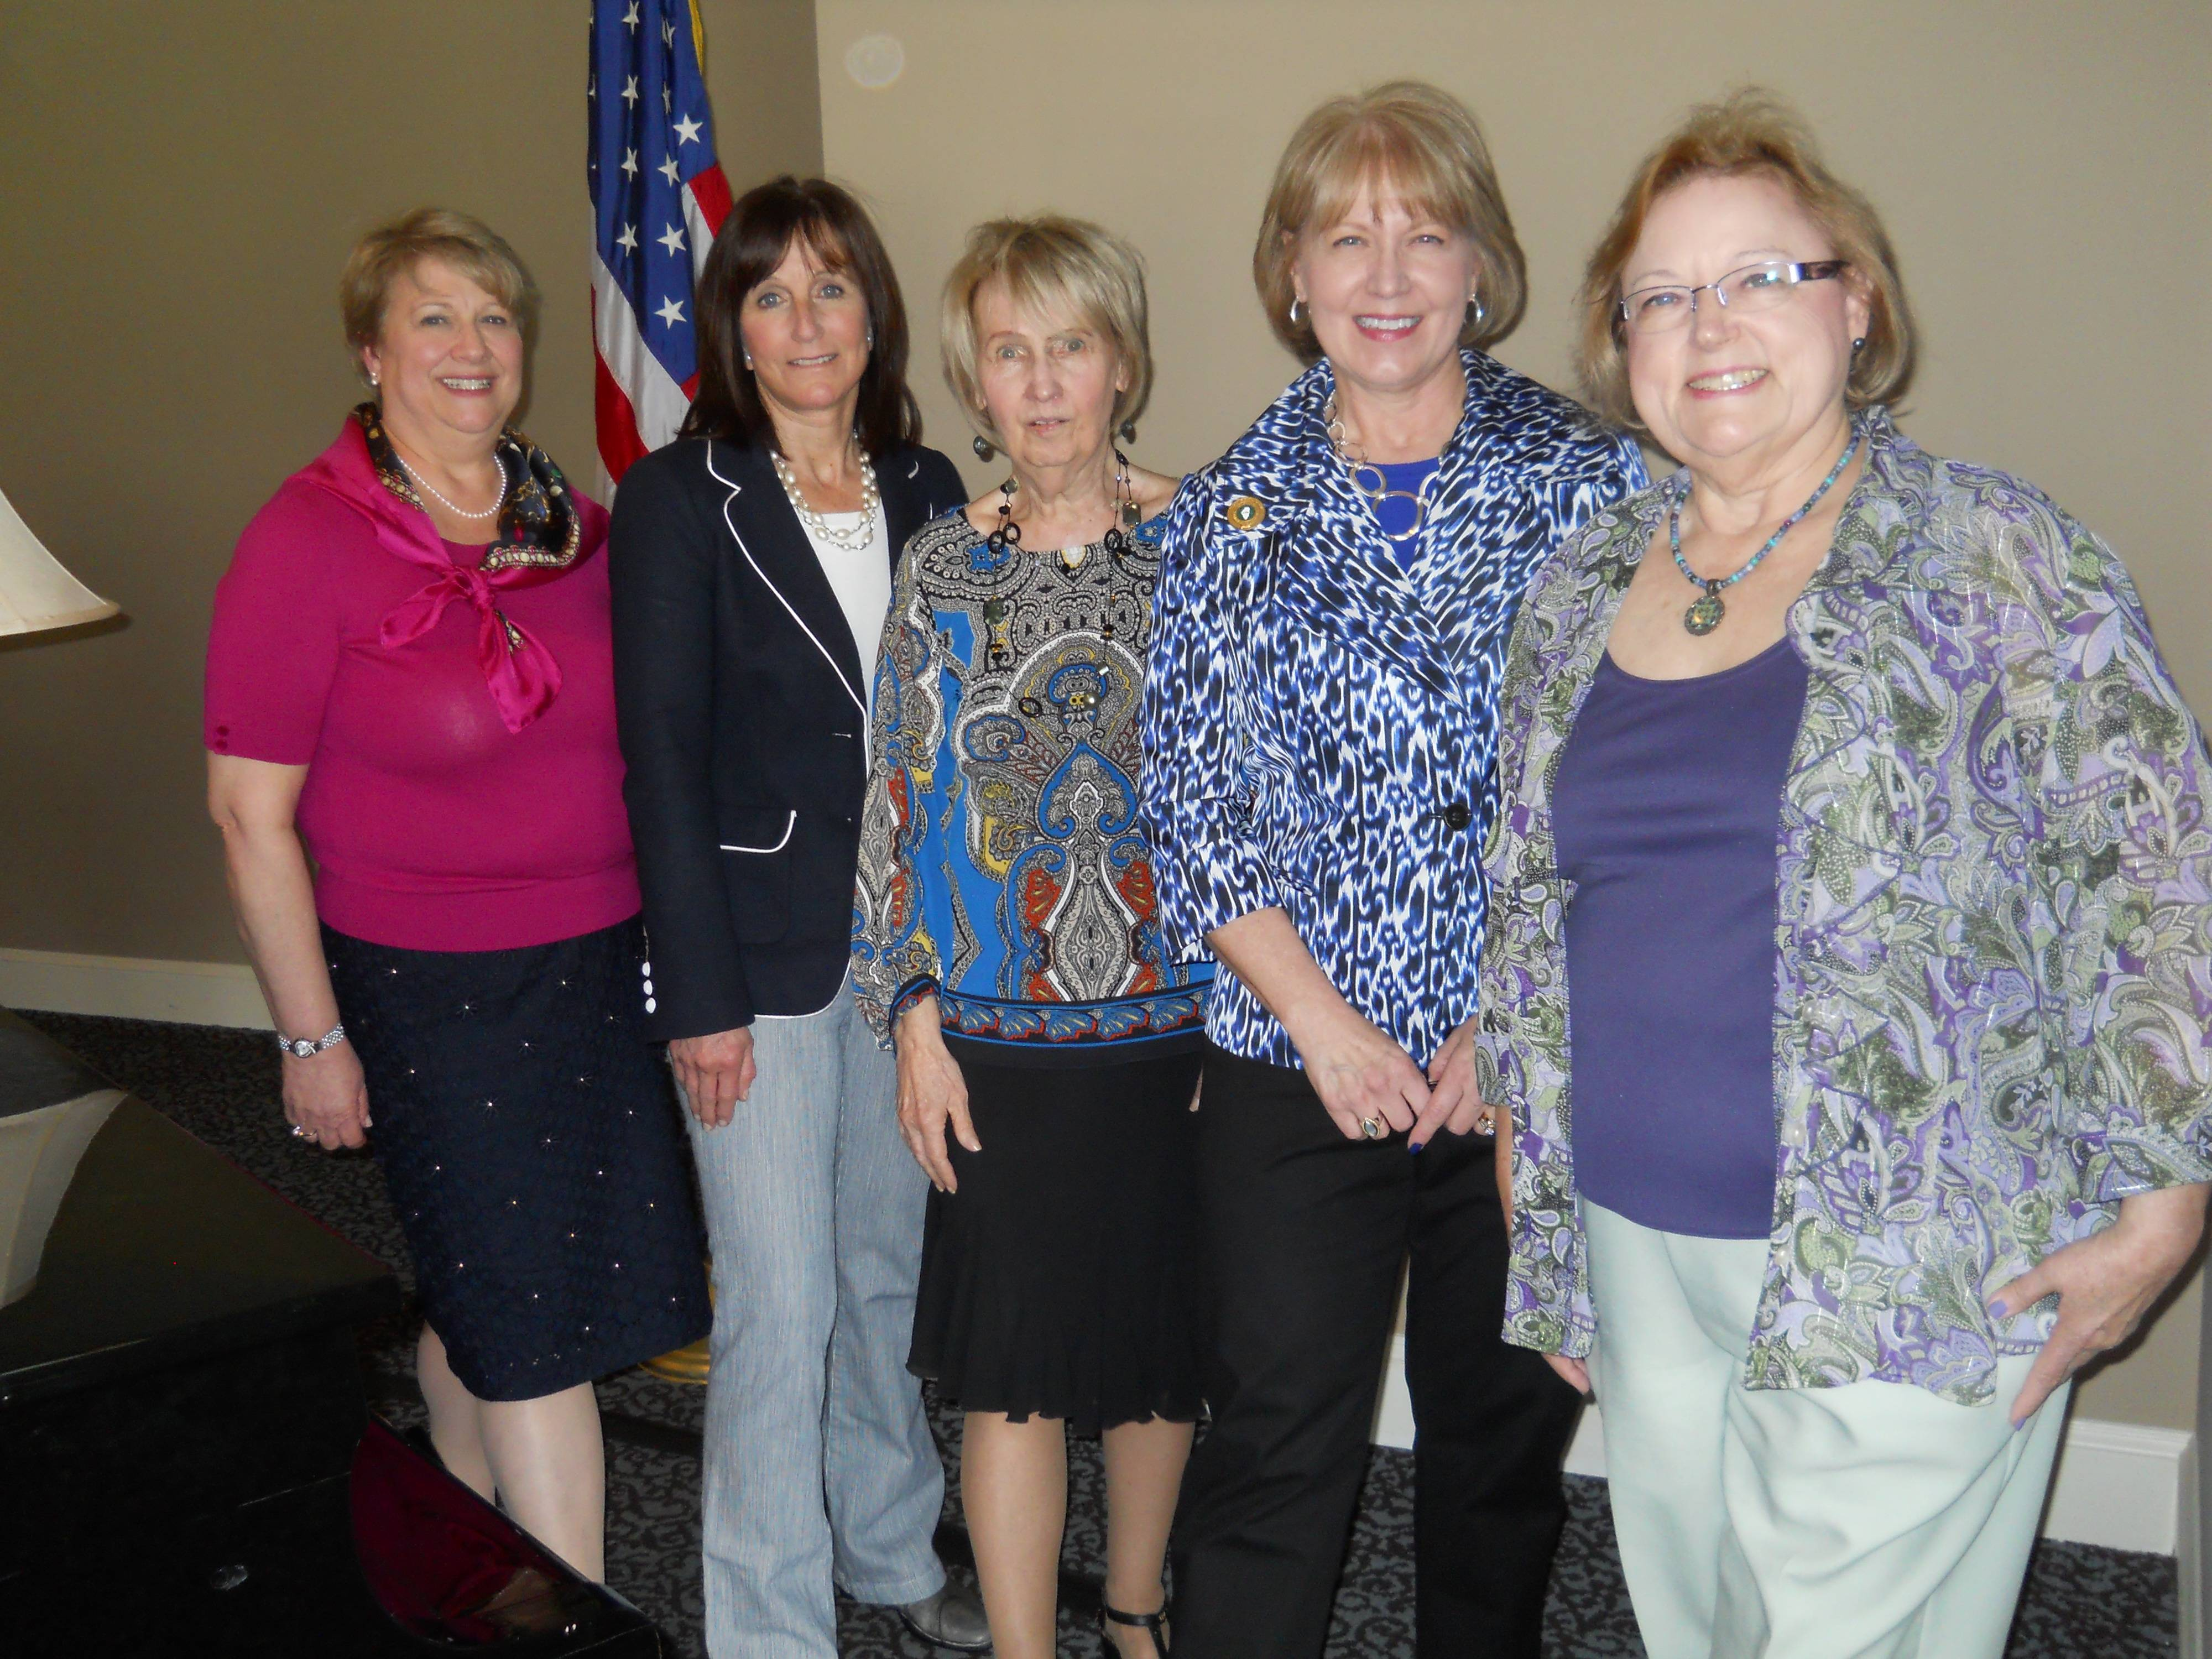 Naperville Woman's Club 2013-14 Officers: left to right:  Janet Coffey, President; Julie Ulaszek, Membership Vice President; Colette Mahoney, Meetings Vice President; Julie Cunningham, Secretary; and Carol Showalter, Treasurer.